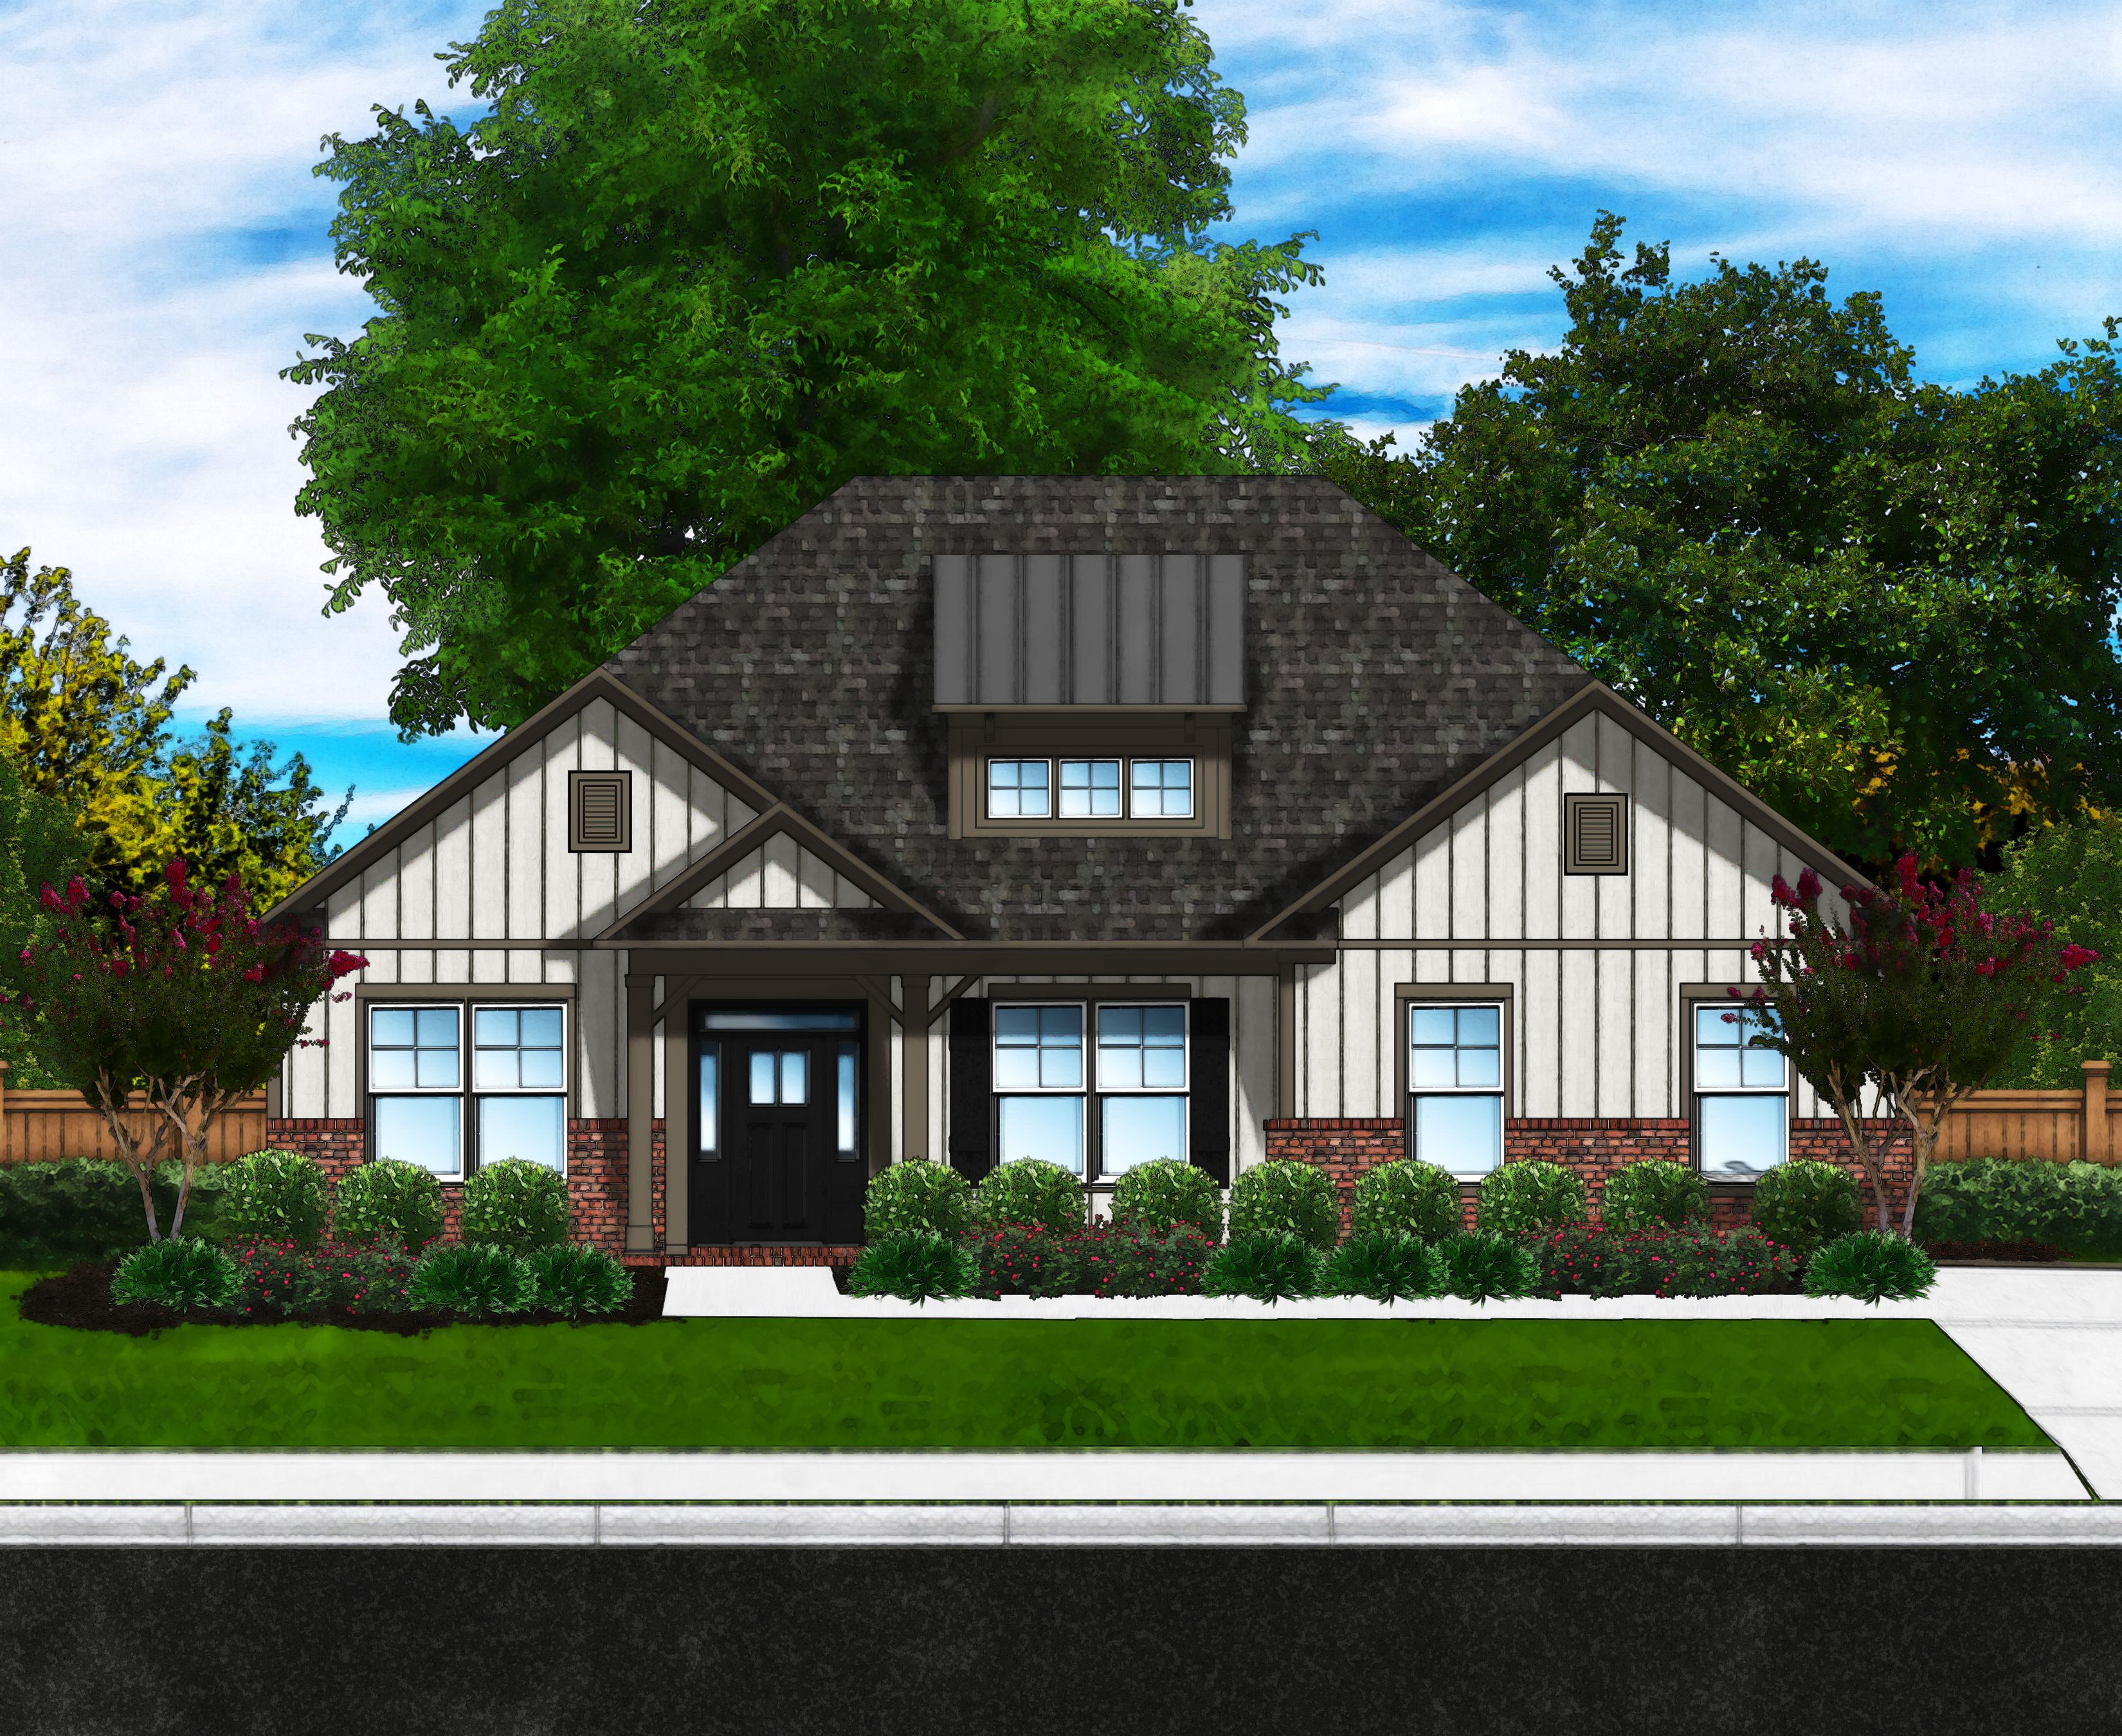 Exterior featured in the Magnolia D3 SL By Great Southern Homes in Florence, SC